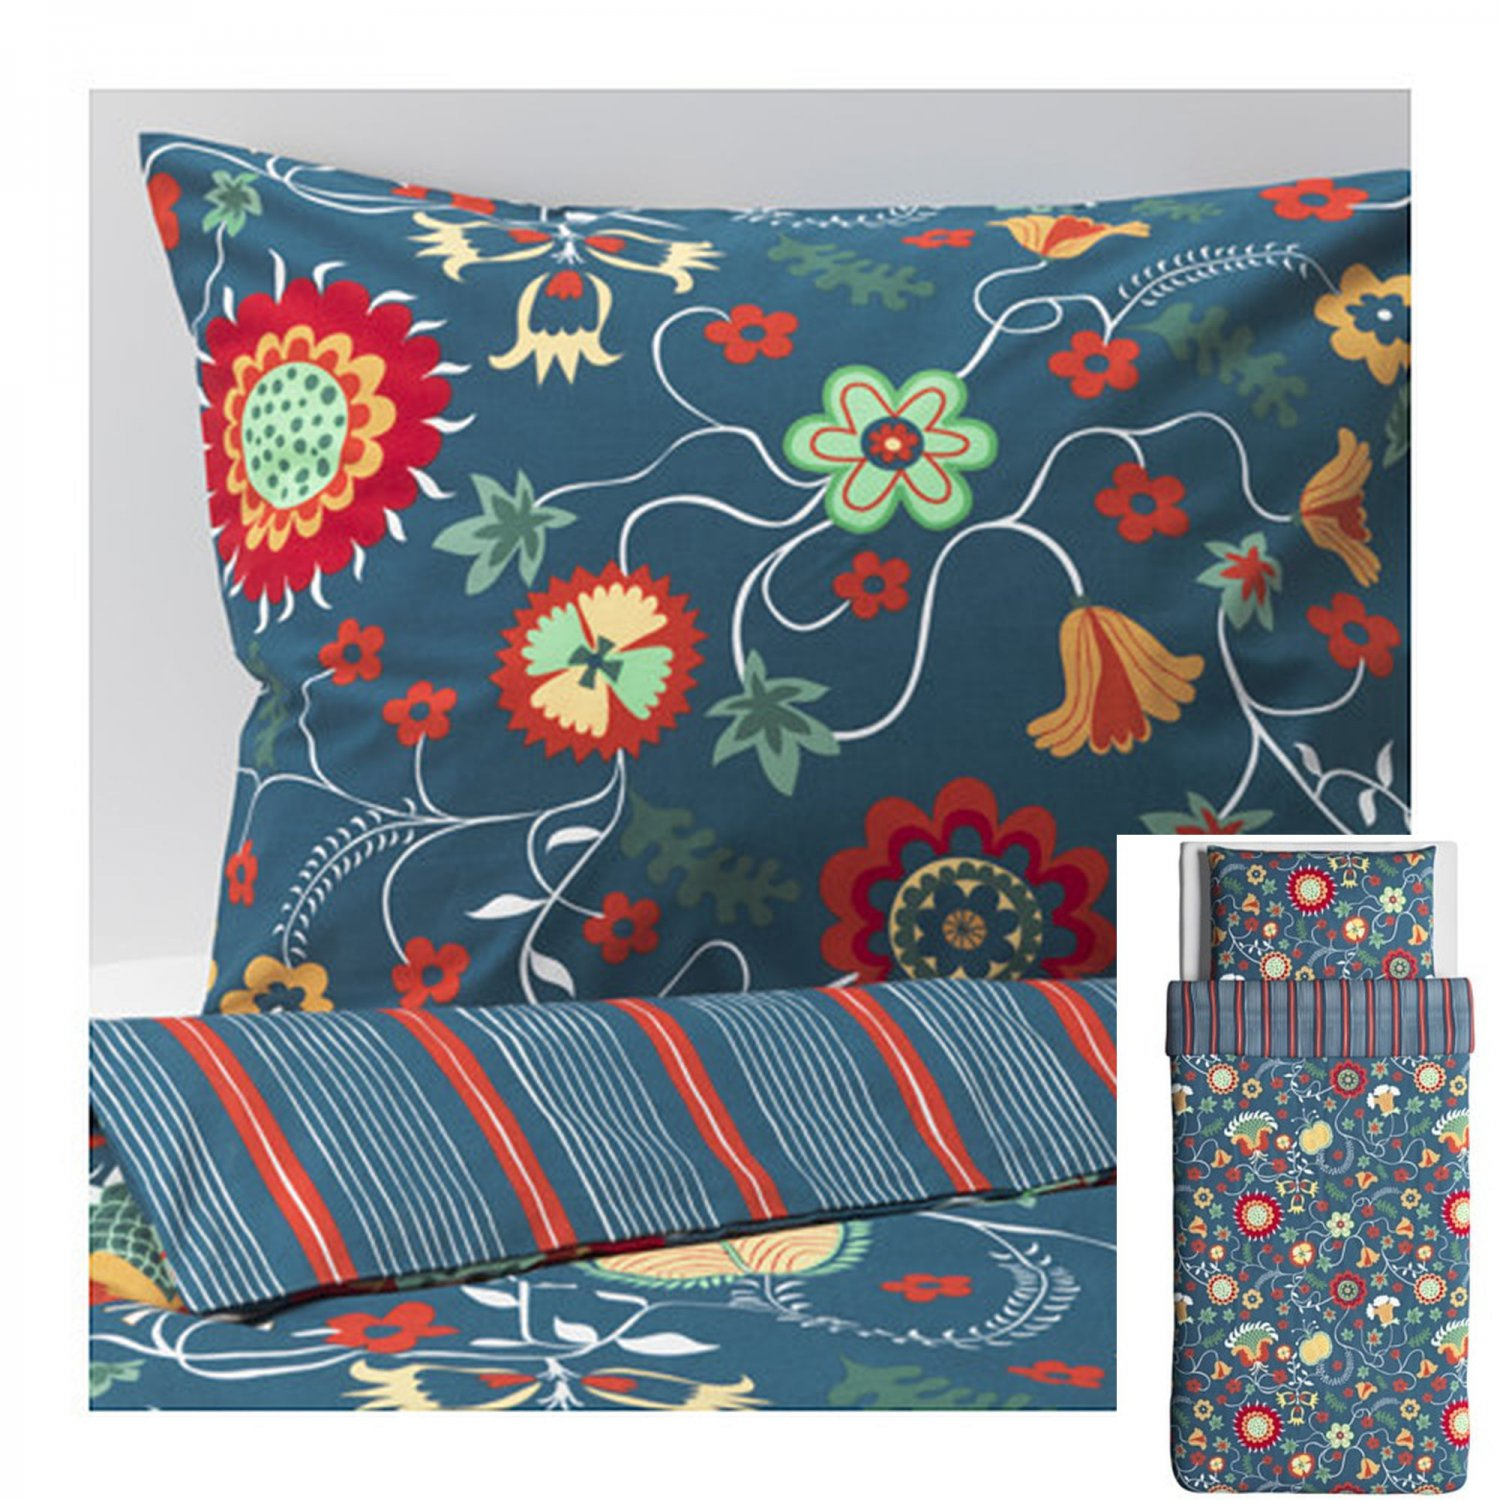 IKEA Rosenrips Twin Single Duvet Cover and Pillowcase Set BLUE Red Floral Vine Stripes